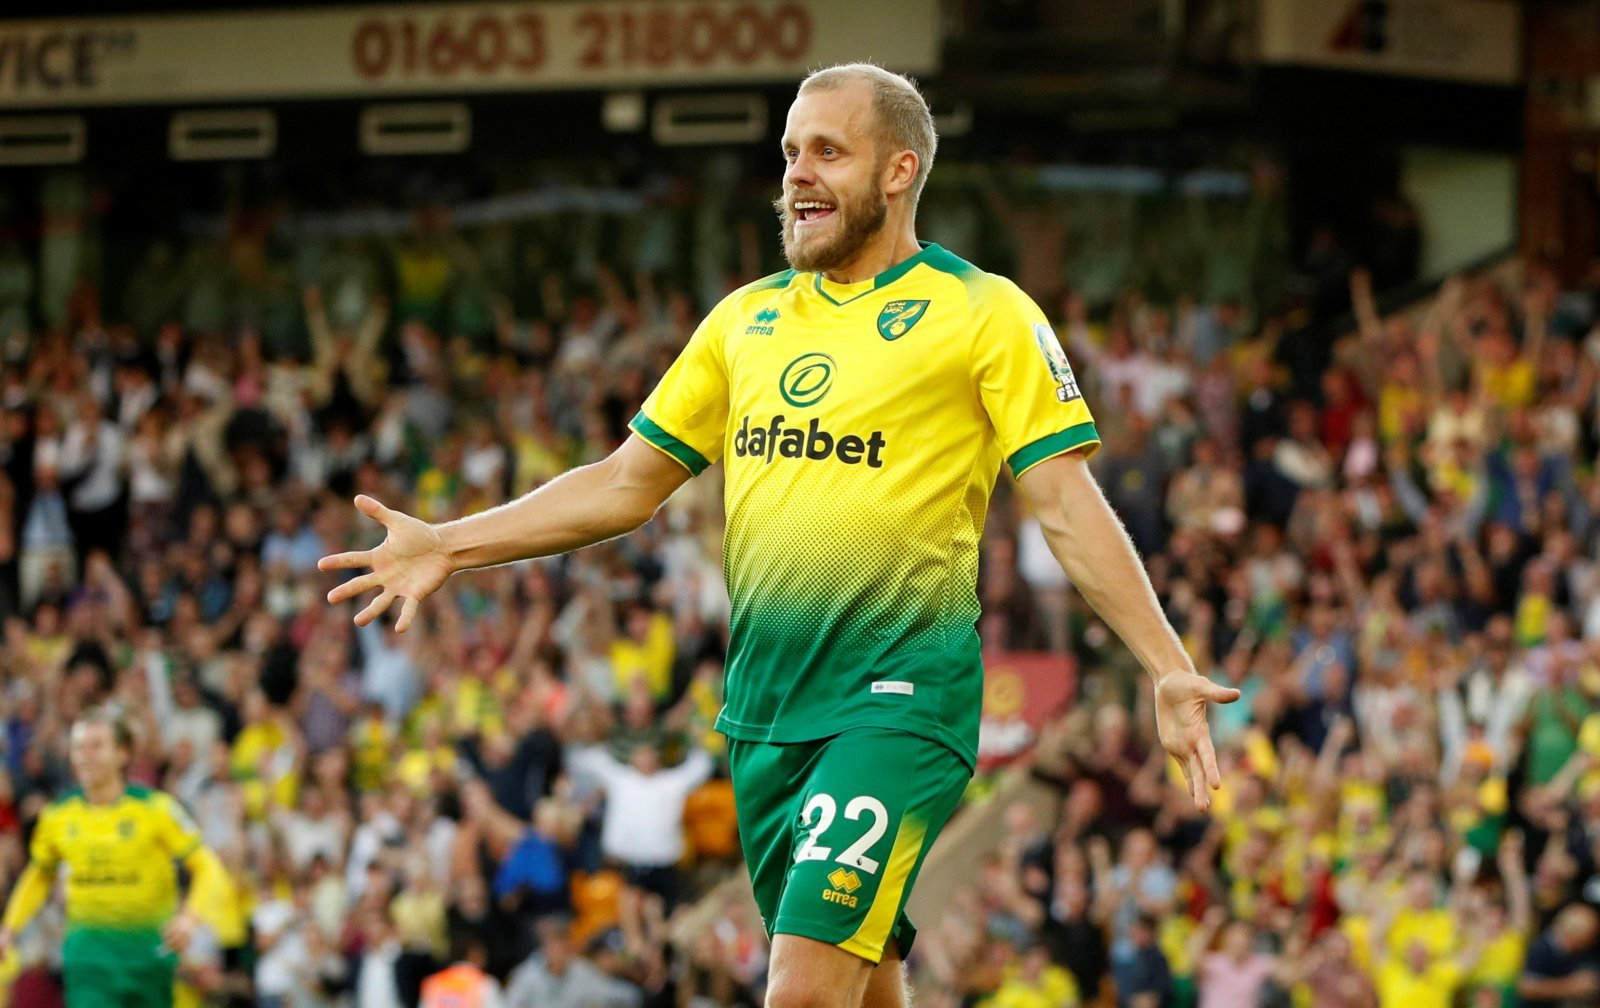 Flashback: Teemu Pukki has shown two very different sides in baffling career